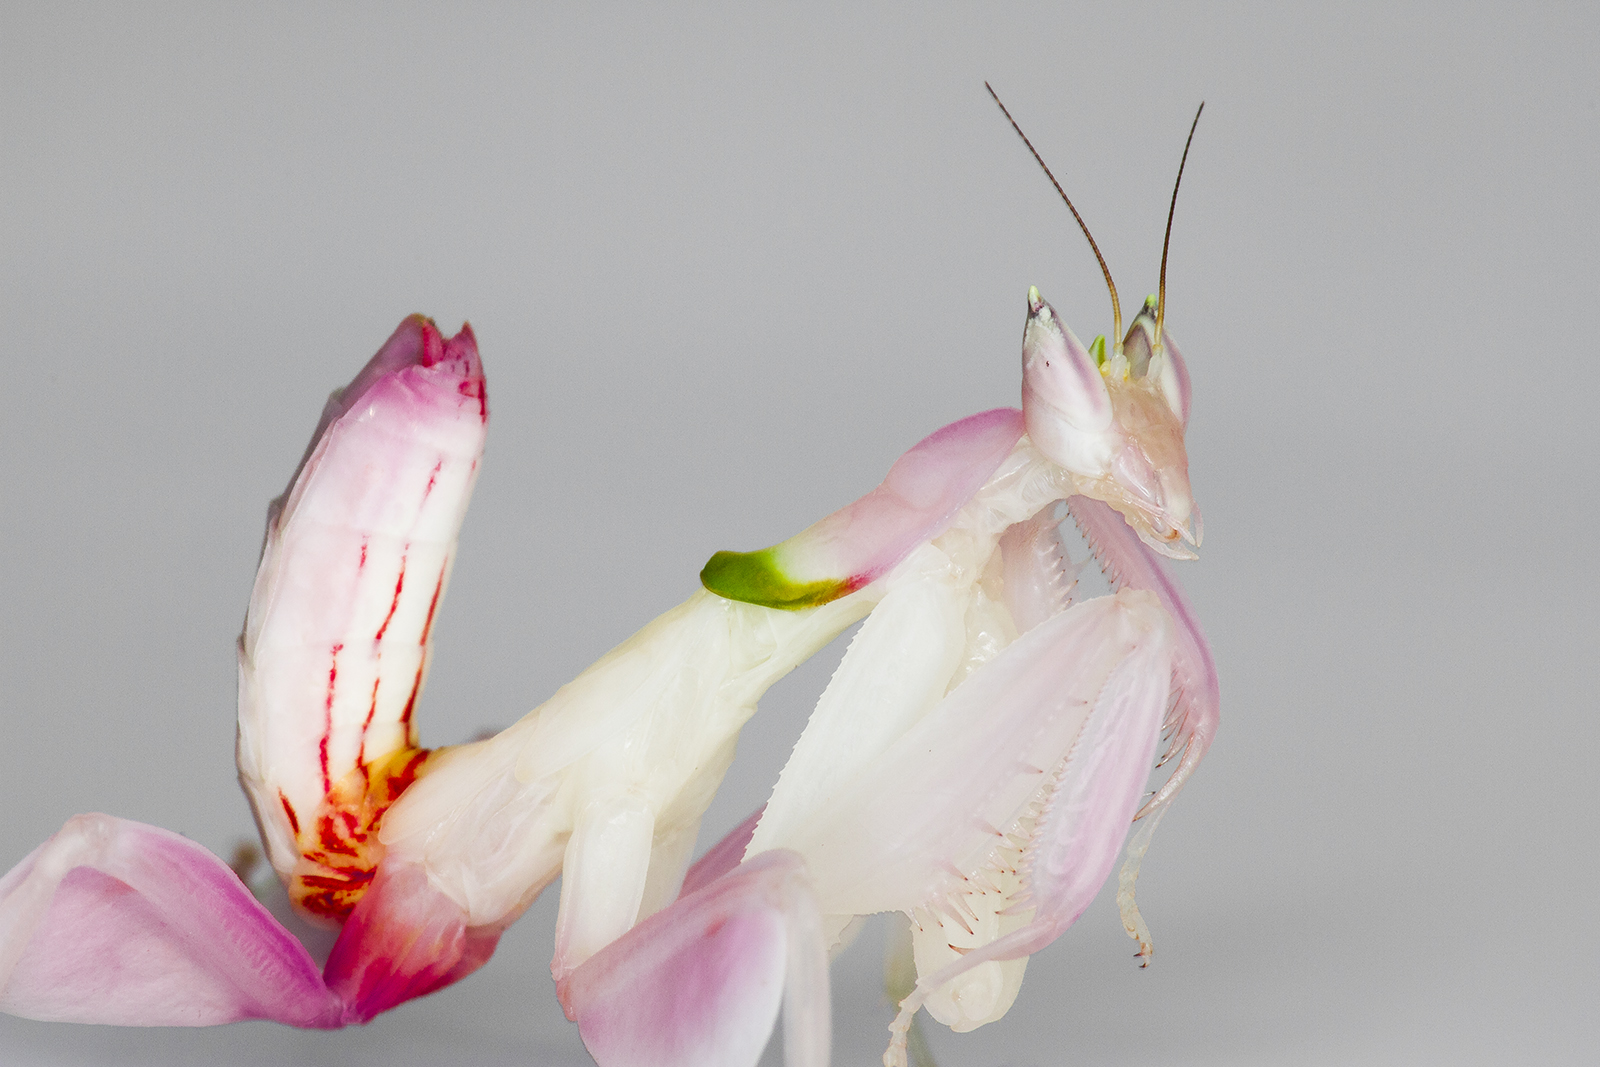 A juvenile orchid mantis. Photo by Frupus/flickr/CC BY-NC 2.0